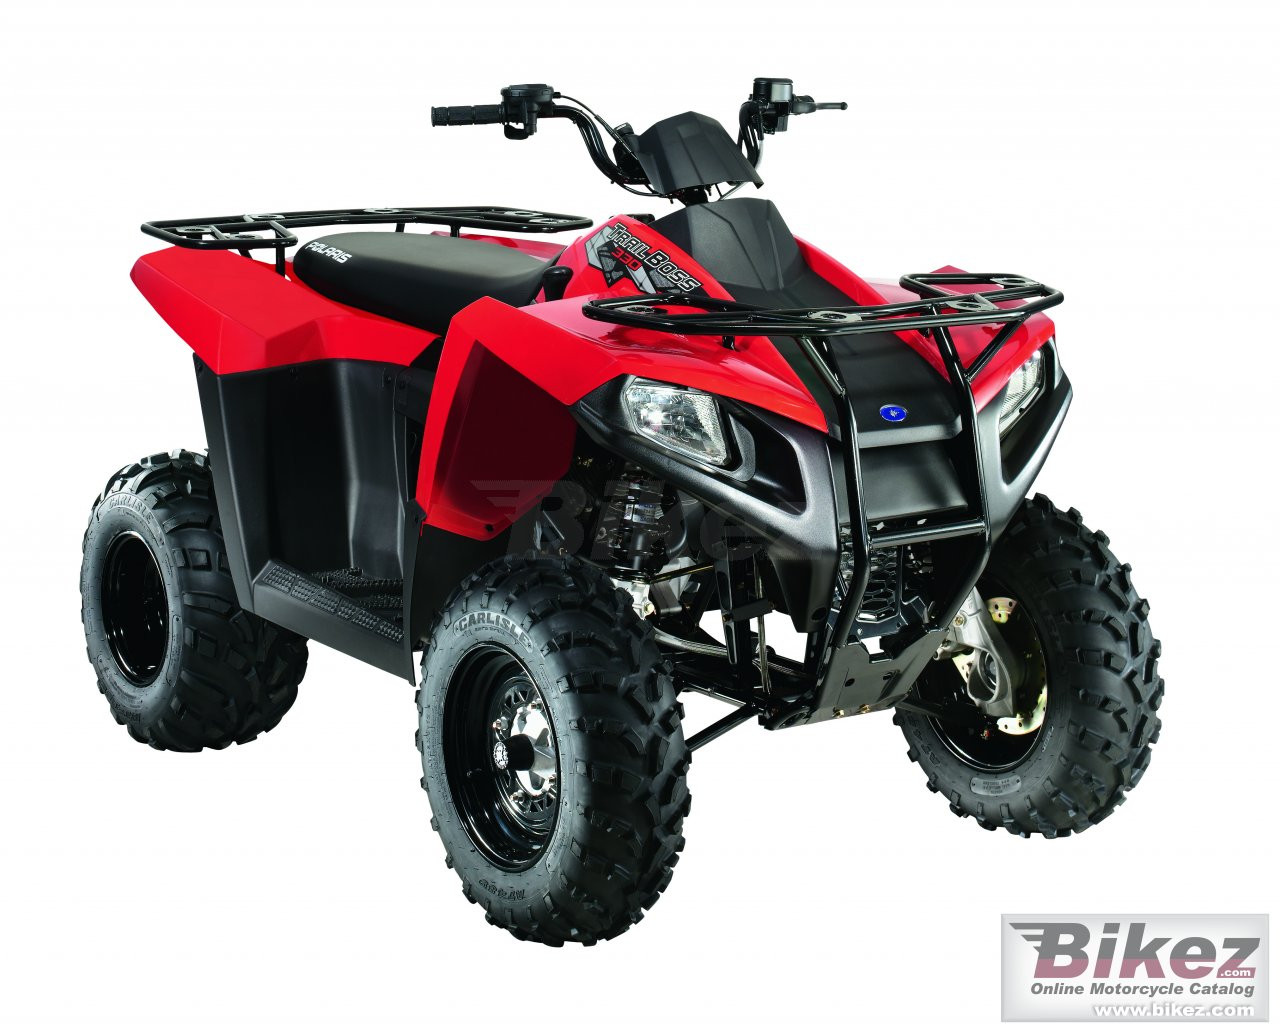 Big Polaris trail boss 330 picture and wallpaper from Bikez.com